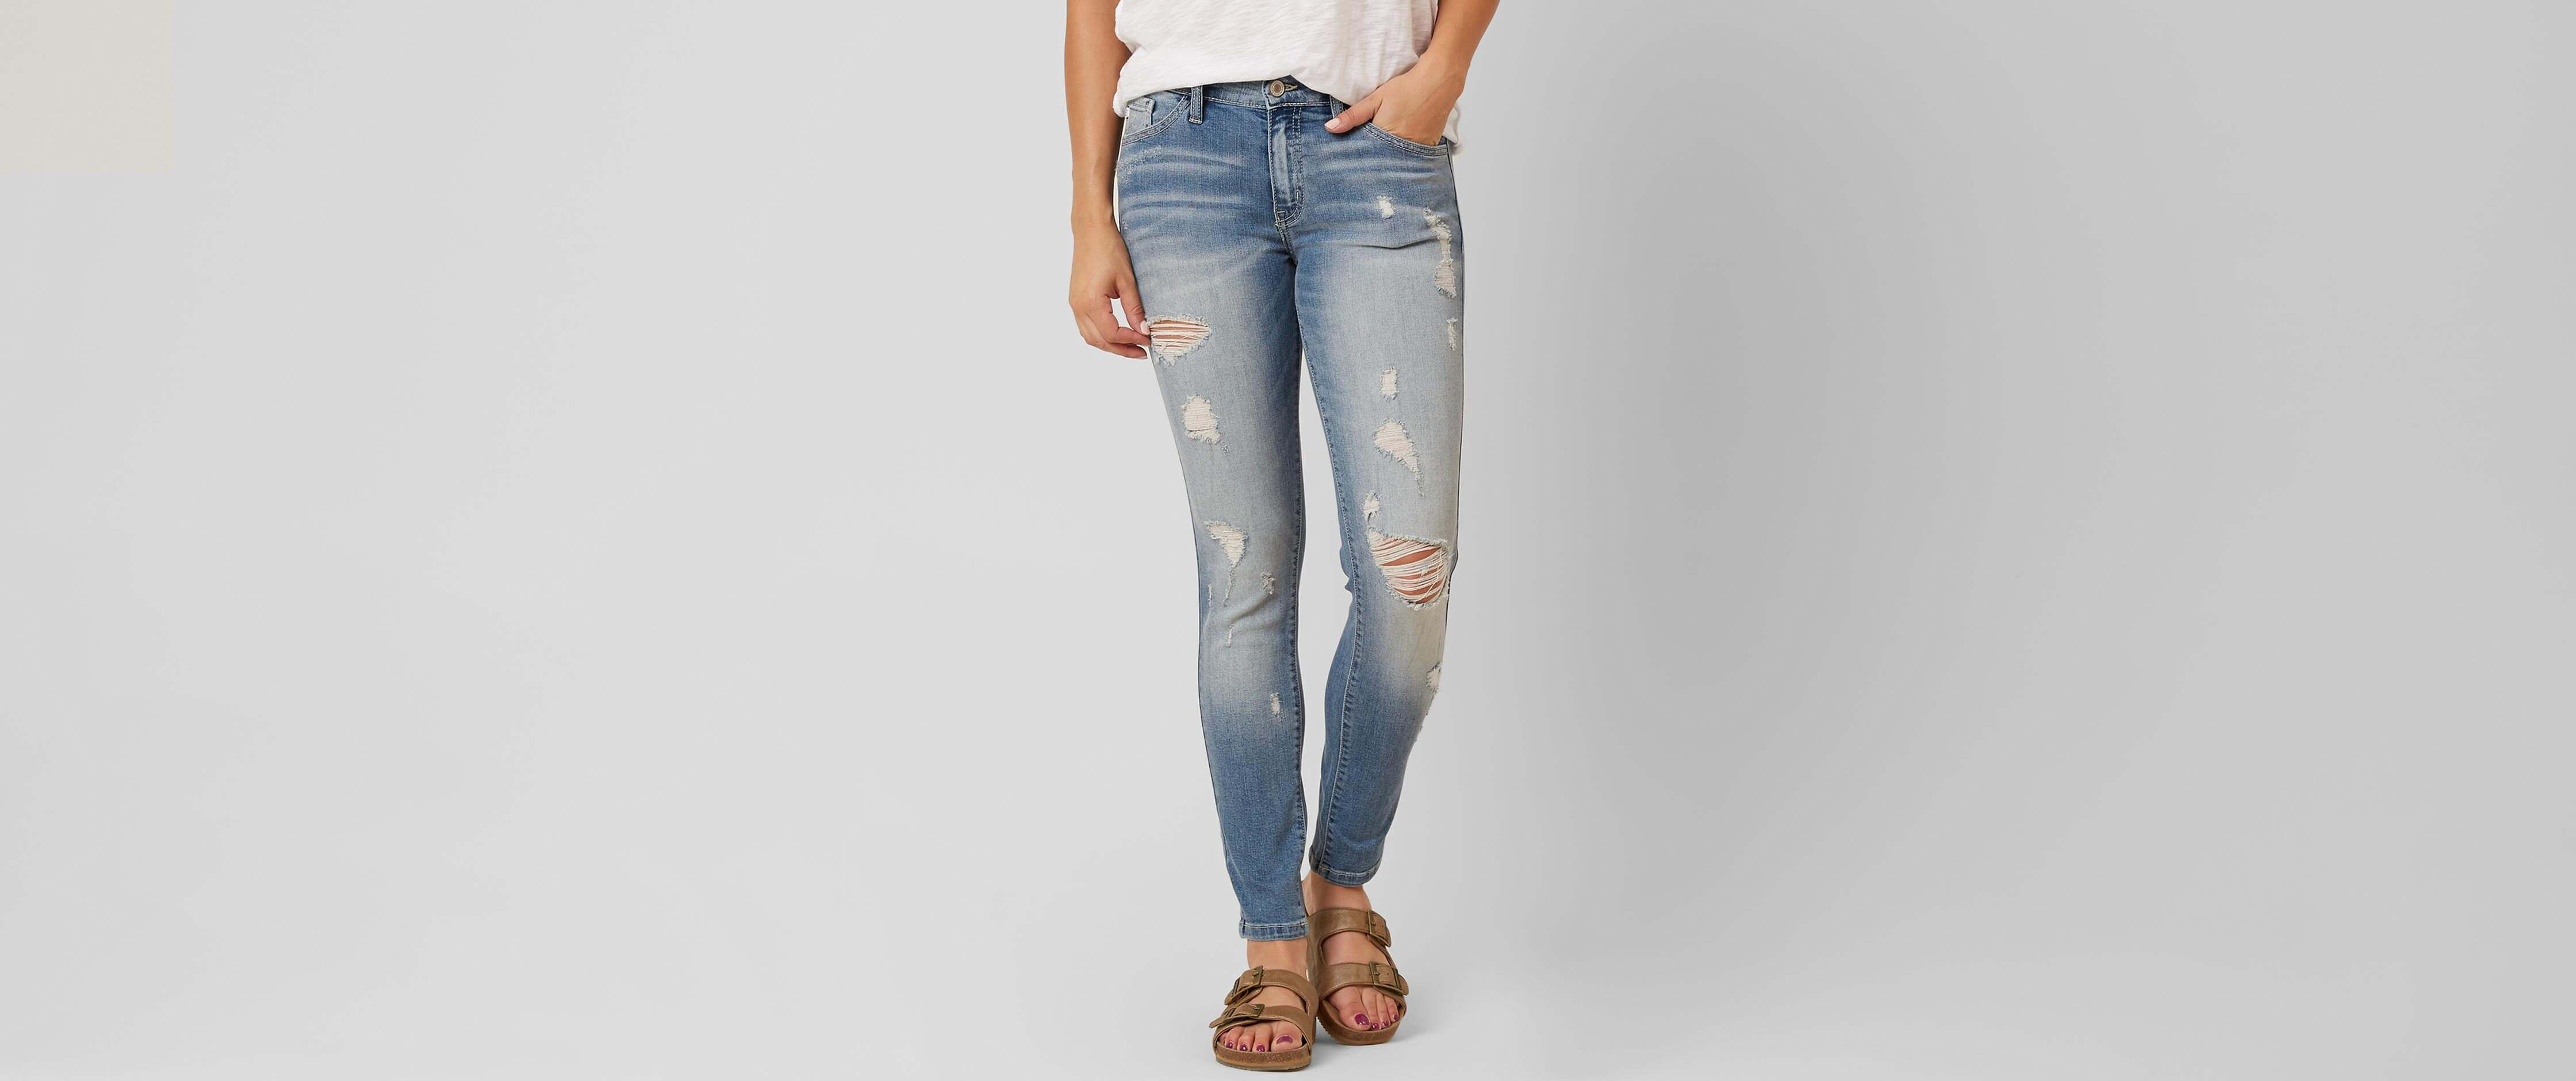 KanCan Mid-Rise Skinny Stretch Jean for sale